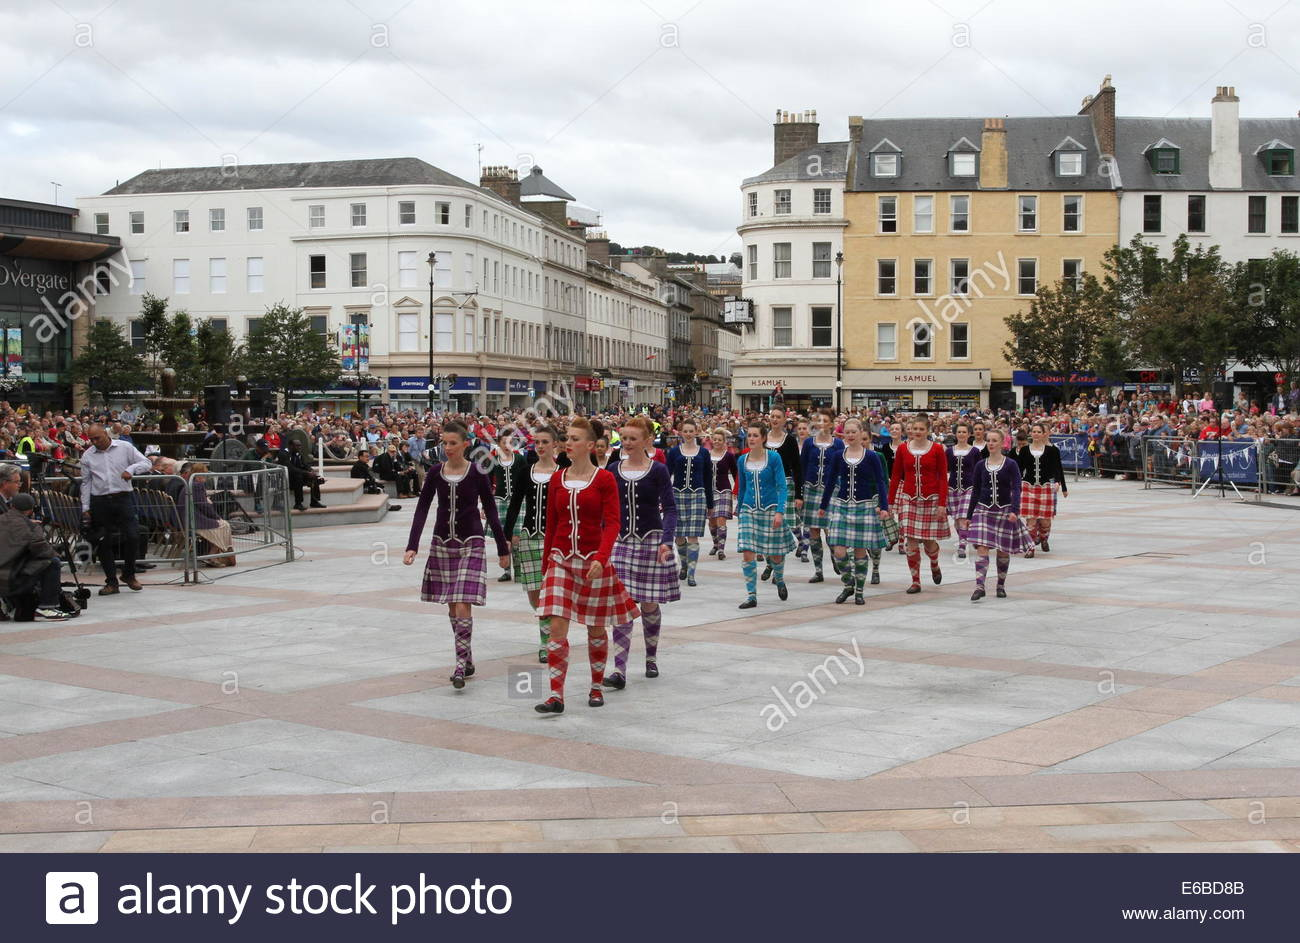 Dundee, Scotland, UK. 19th August, 2014.Highland dancers arrive in City Square Dundee. Hundreds of performers of - Stock Image